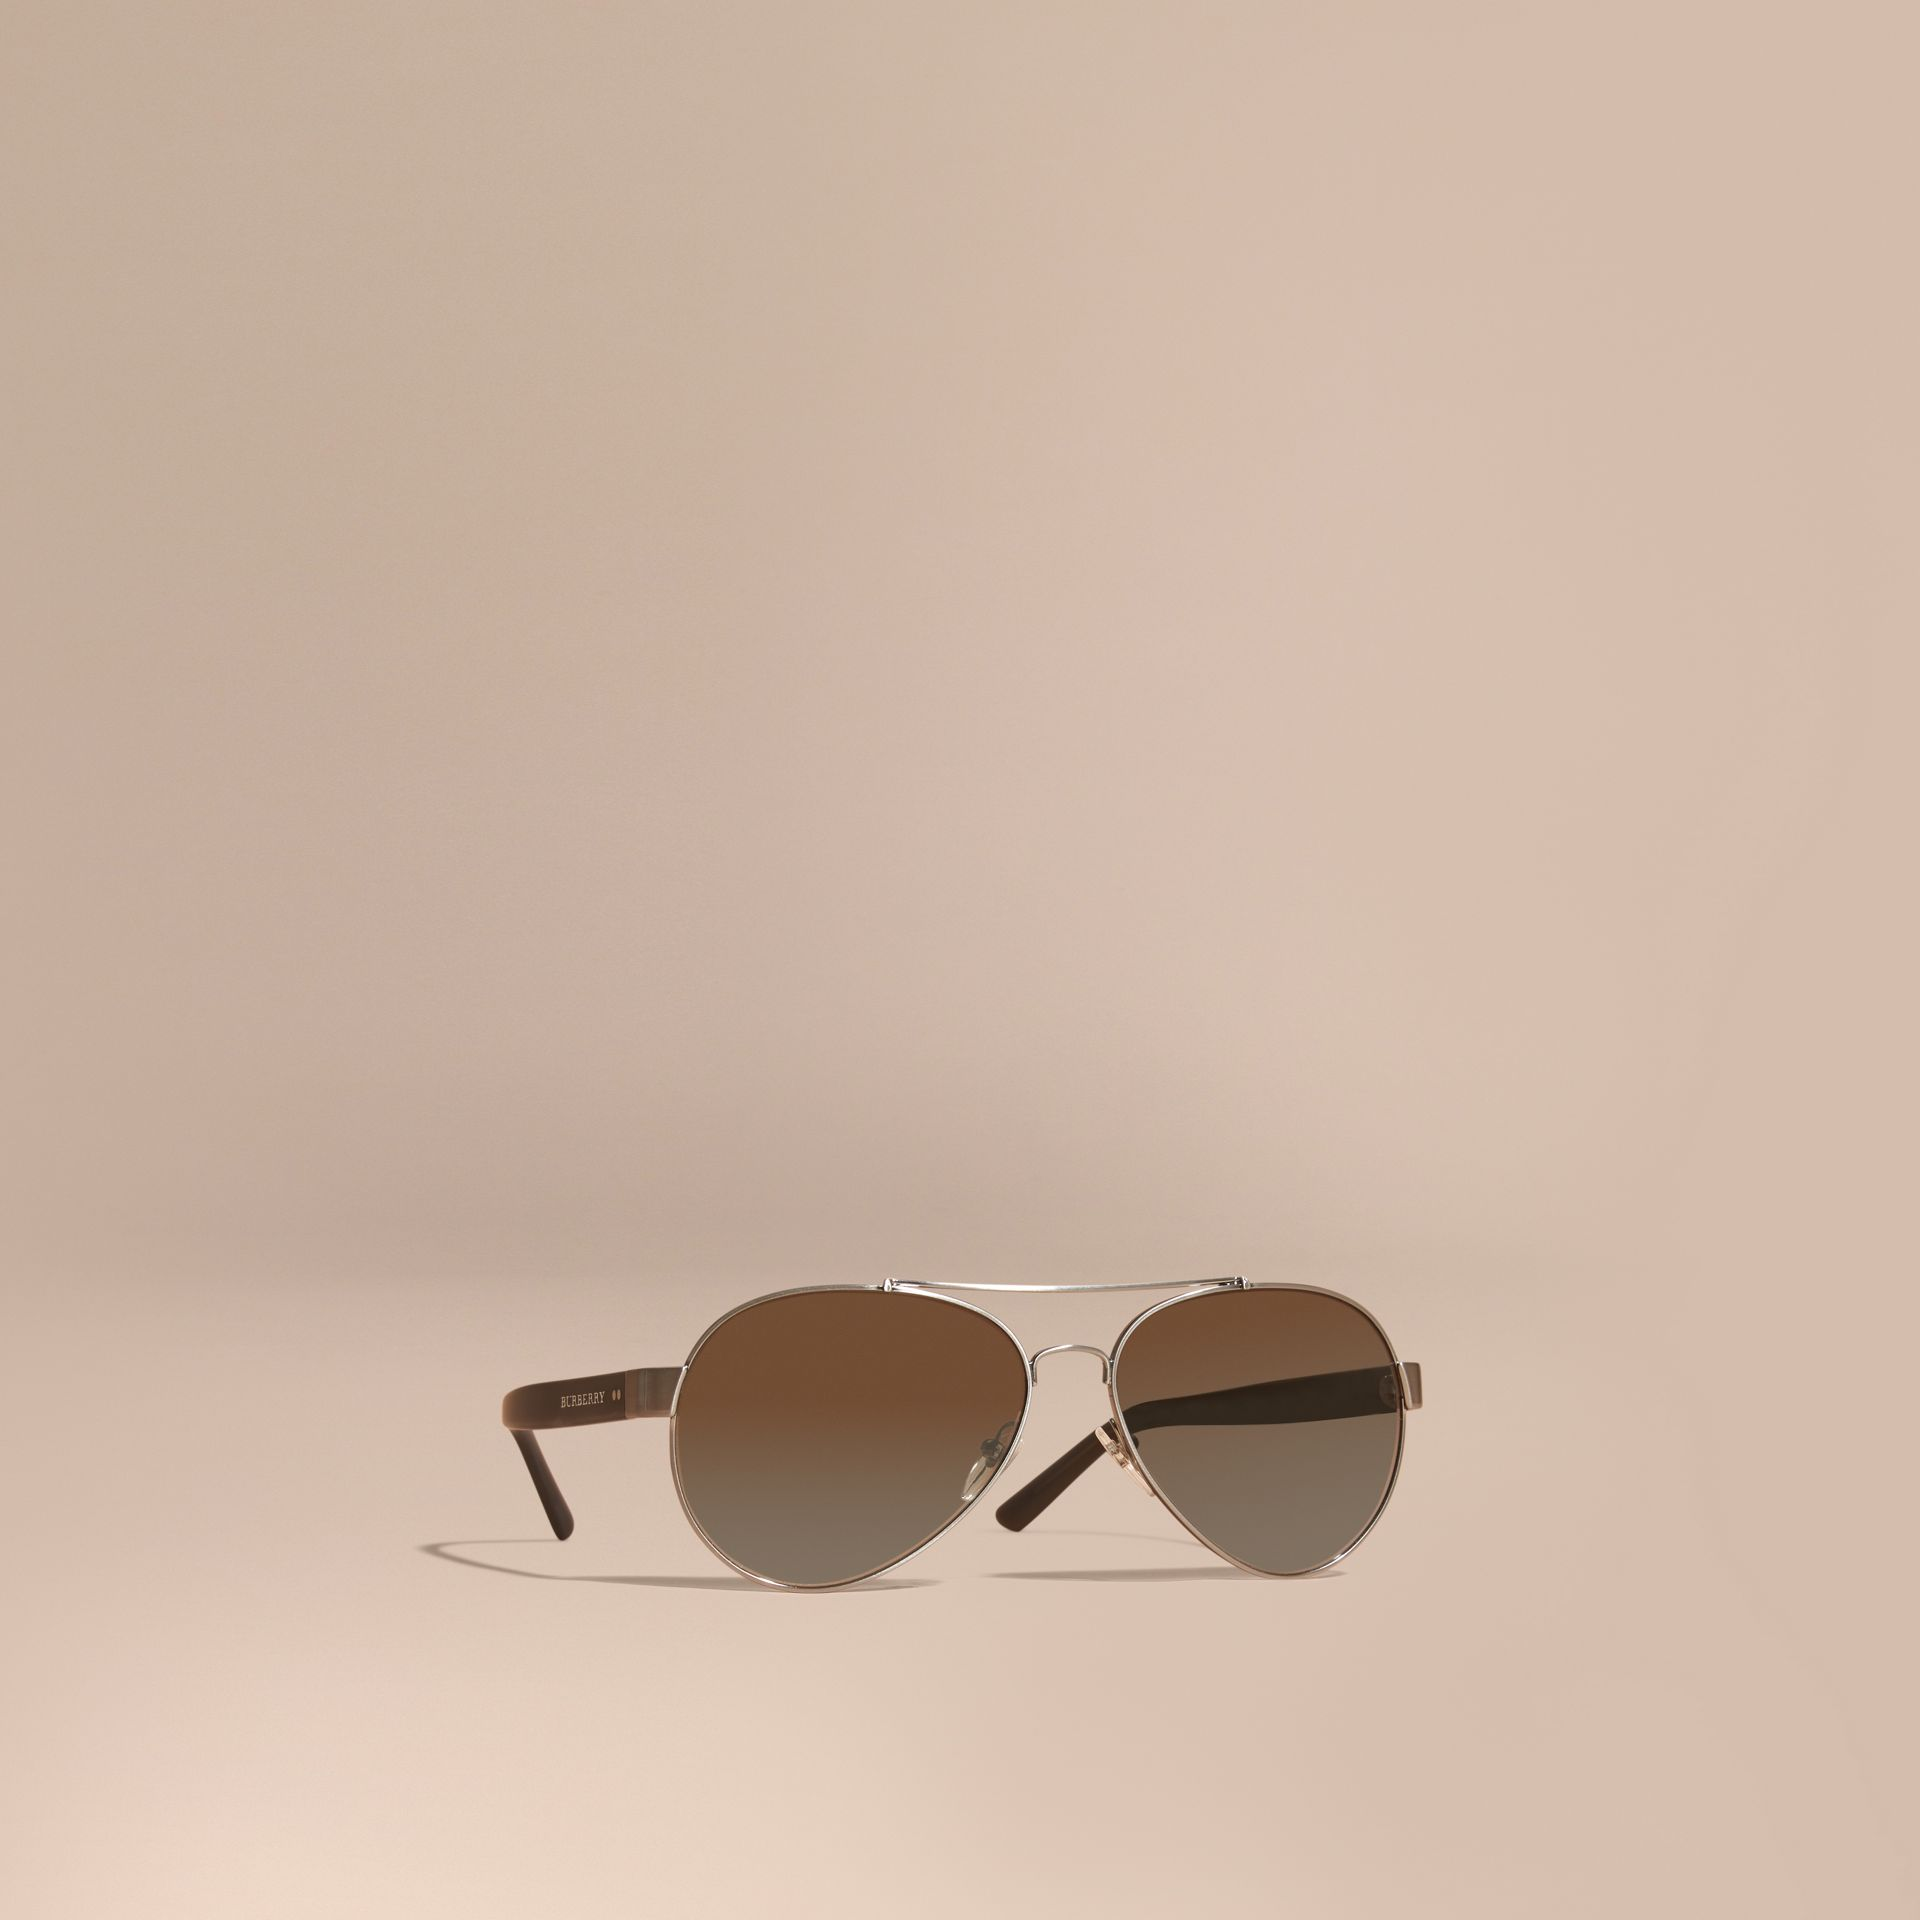 Pilot Sunglasses in Brushed Steel - Men | Burberry - gallery image 1